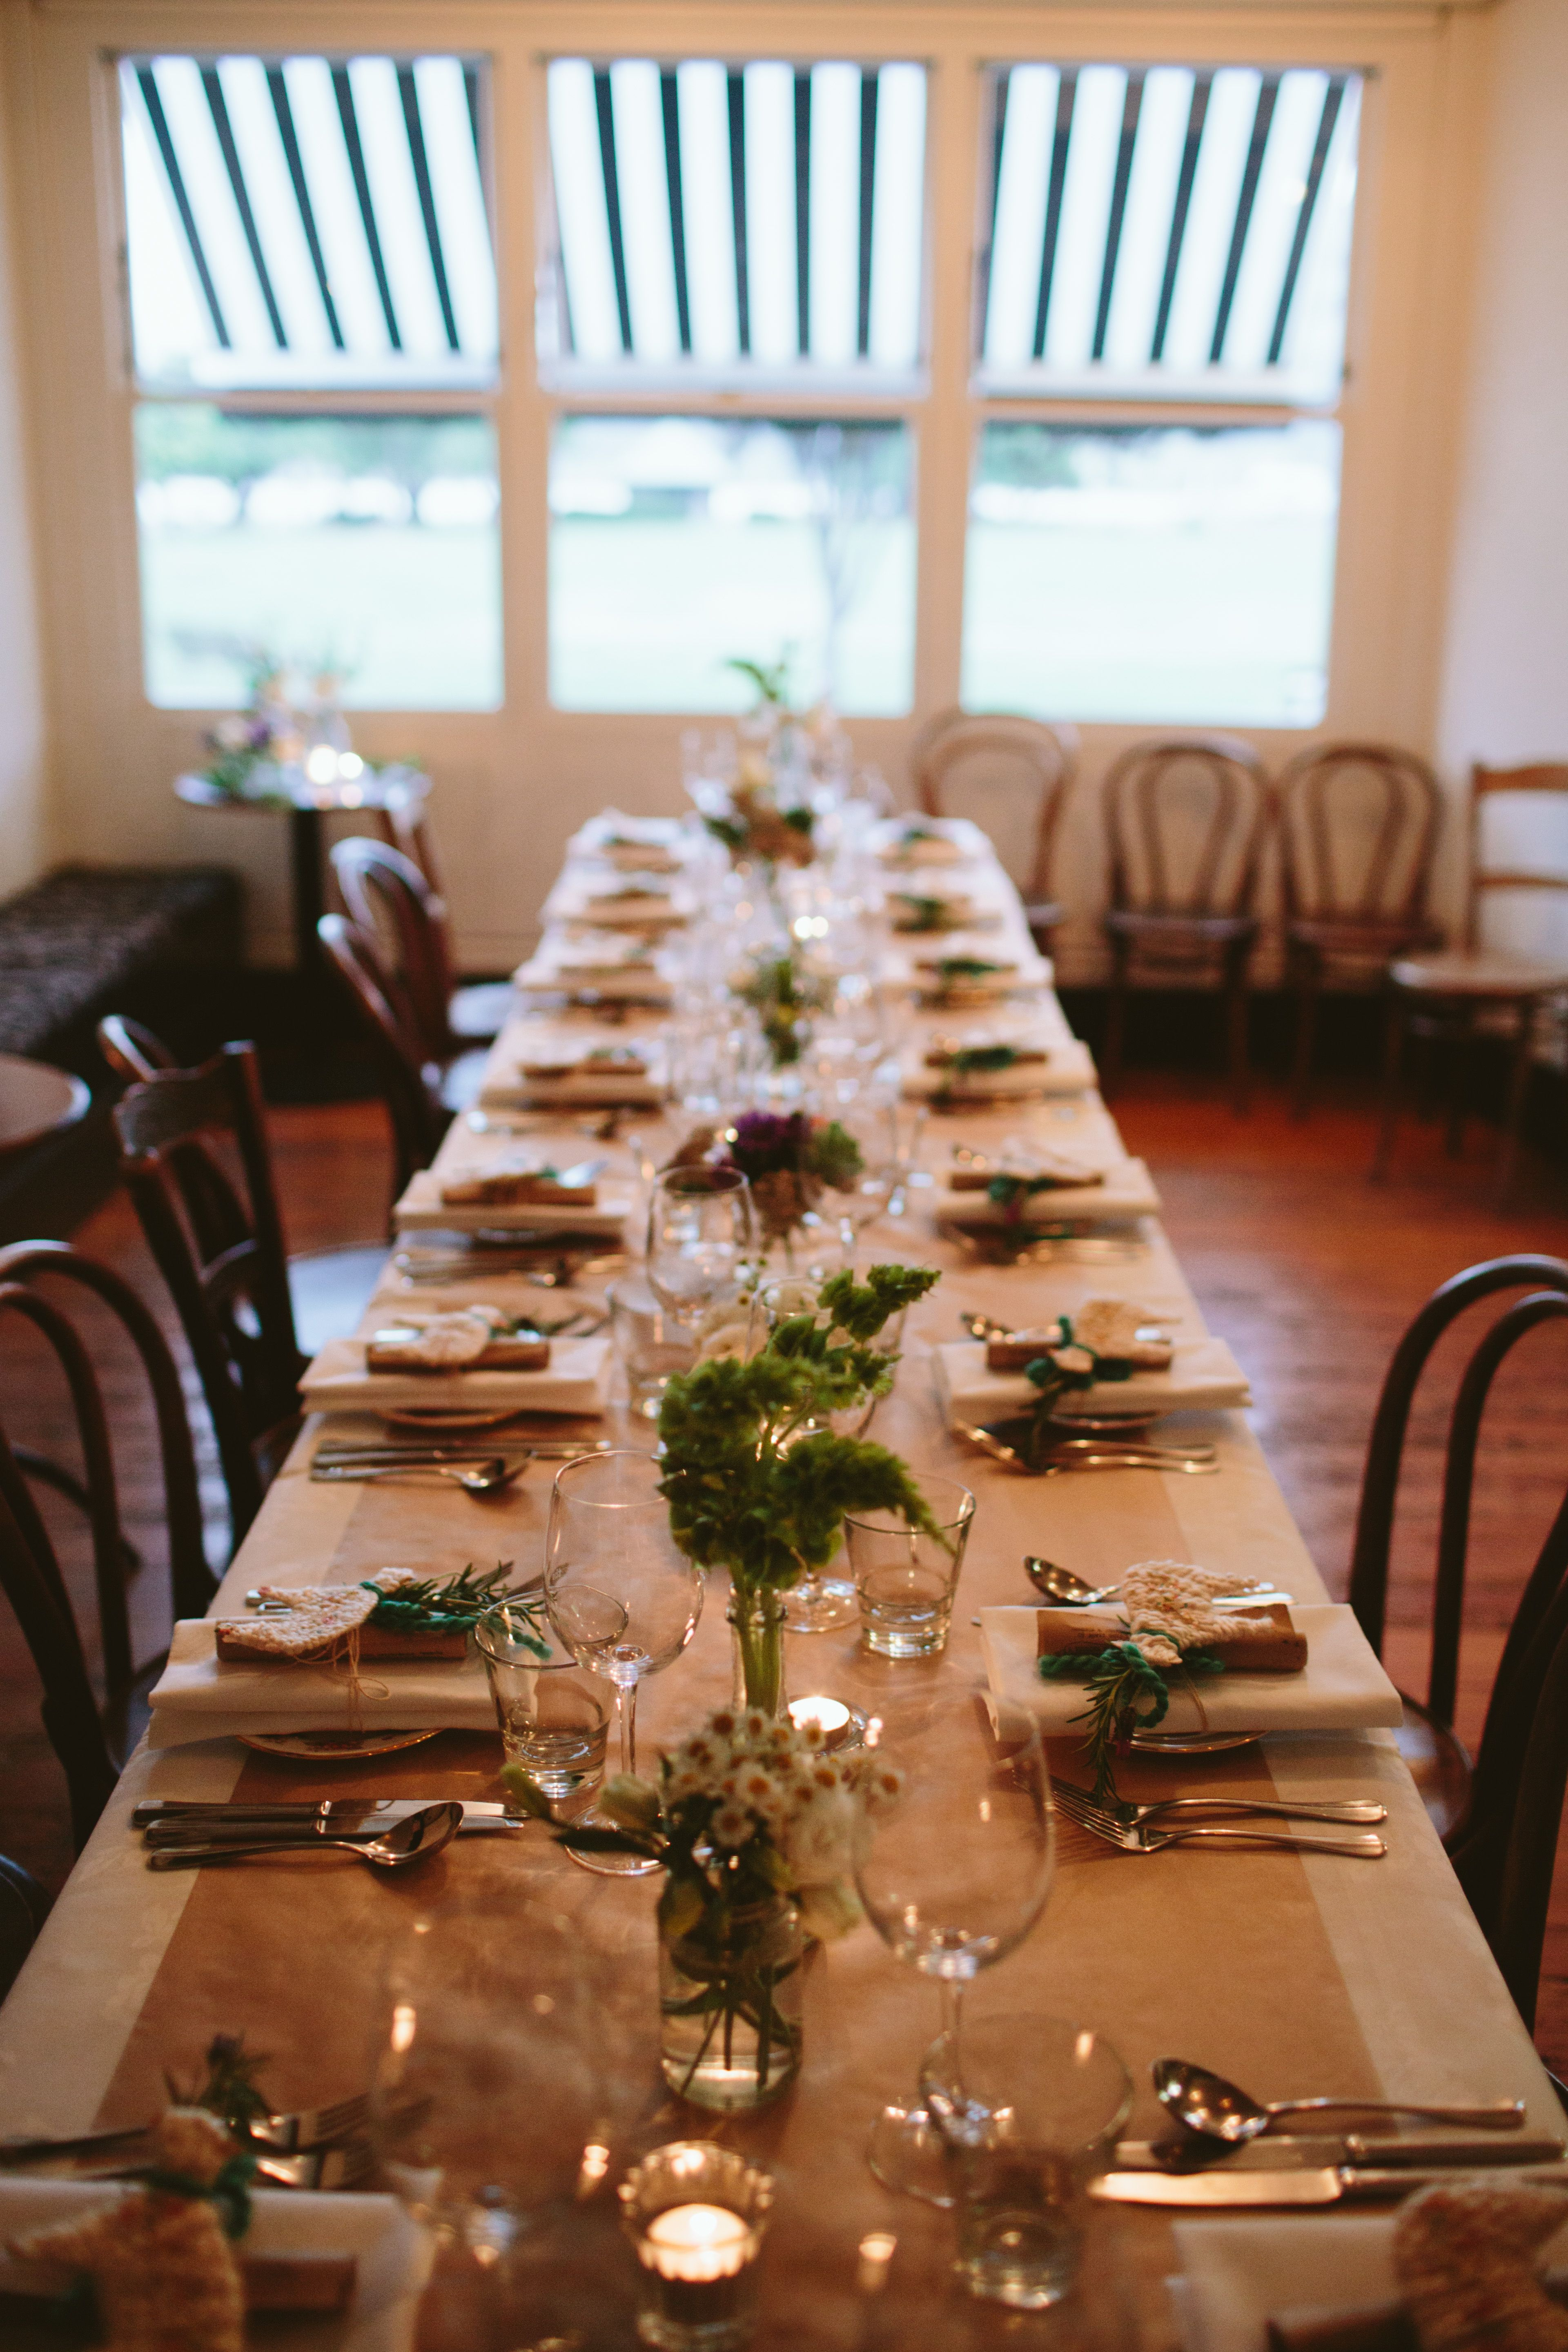 Inspiration an intimate reception setting in new zealand fiona inspiration an intimate reception setting in new zealand fiona andersen photography junglespirit Images